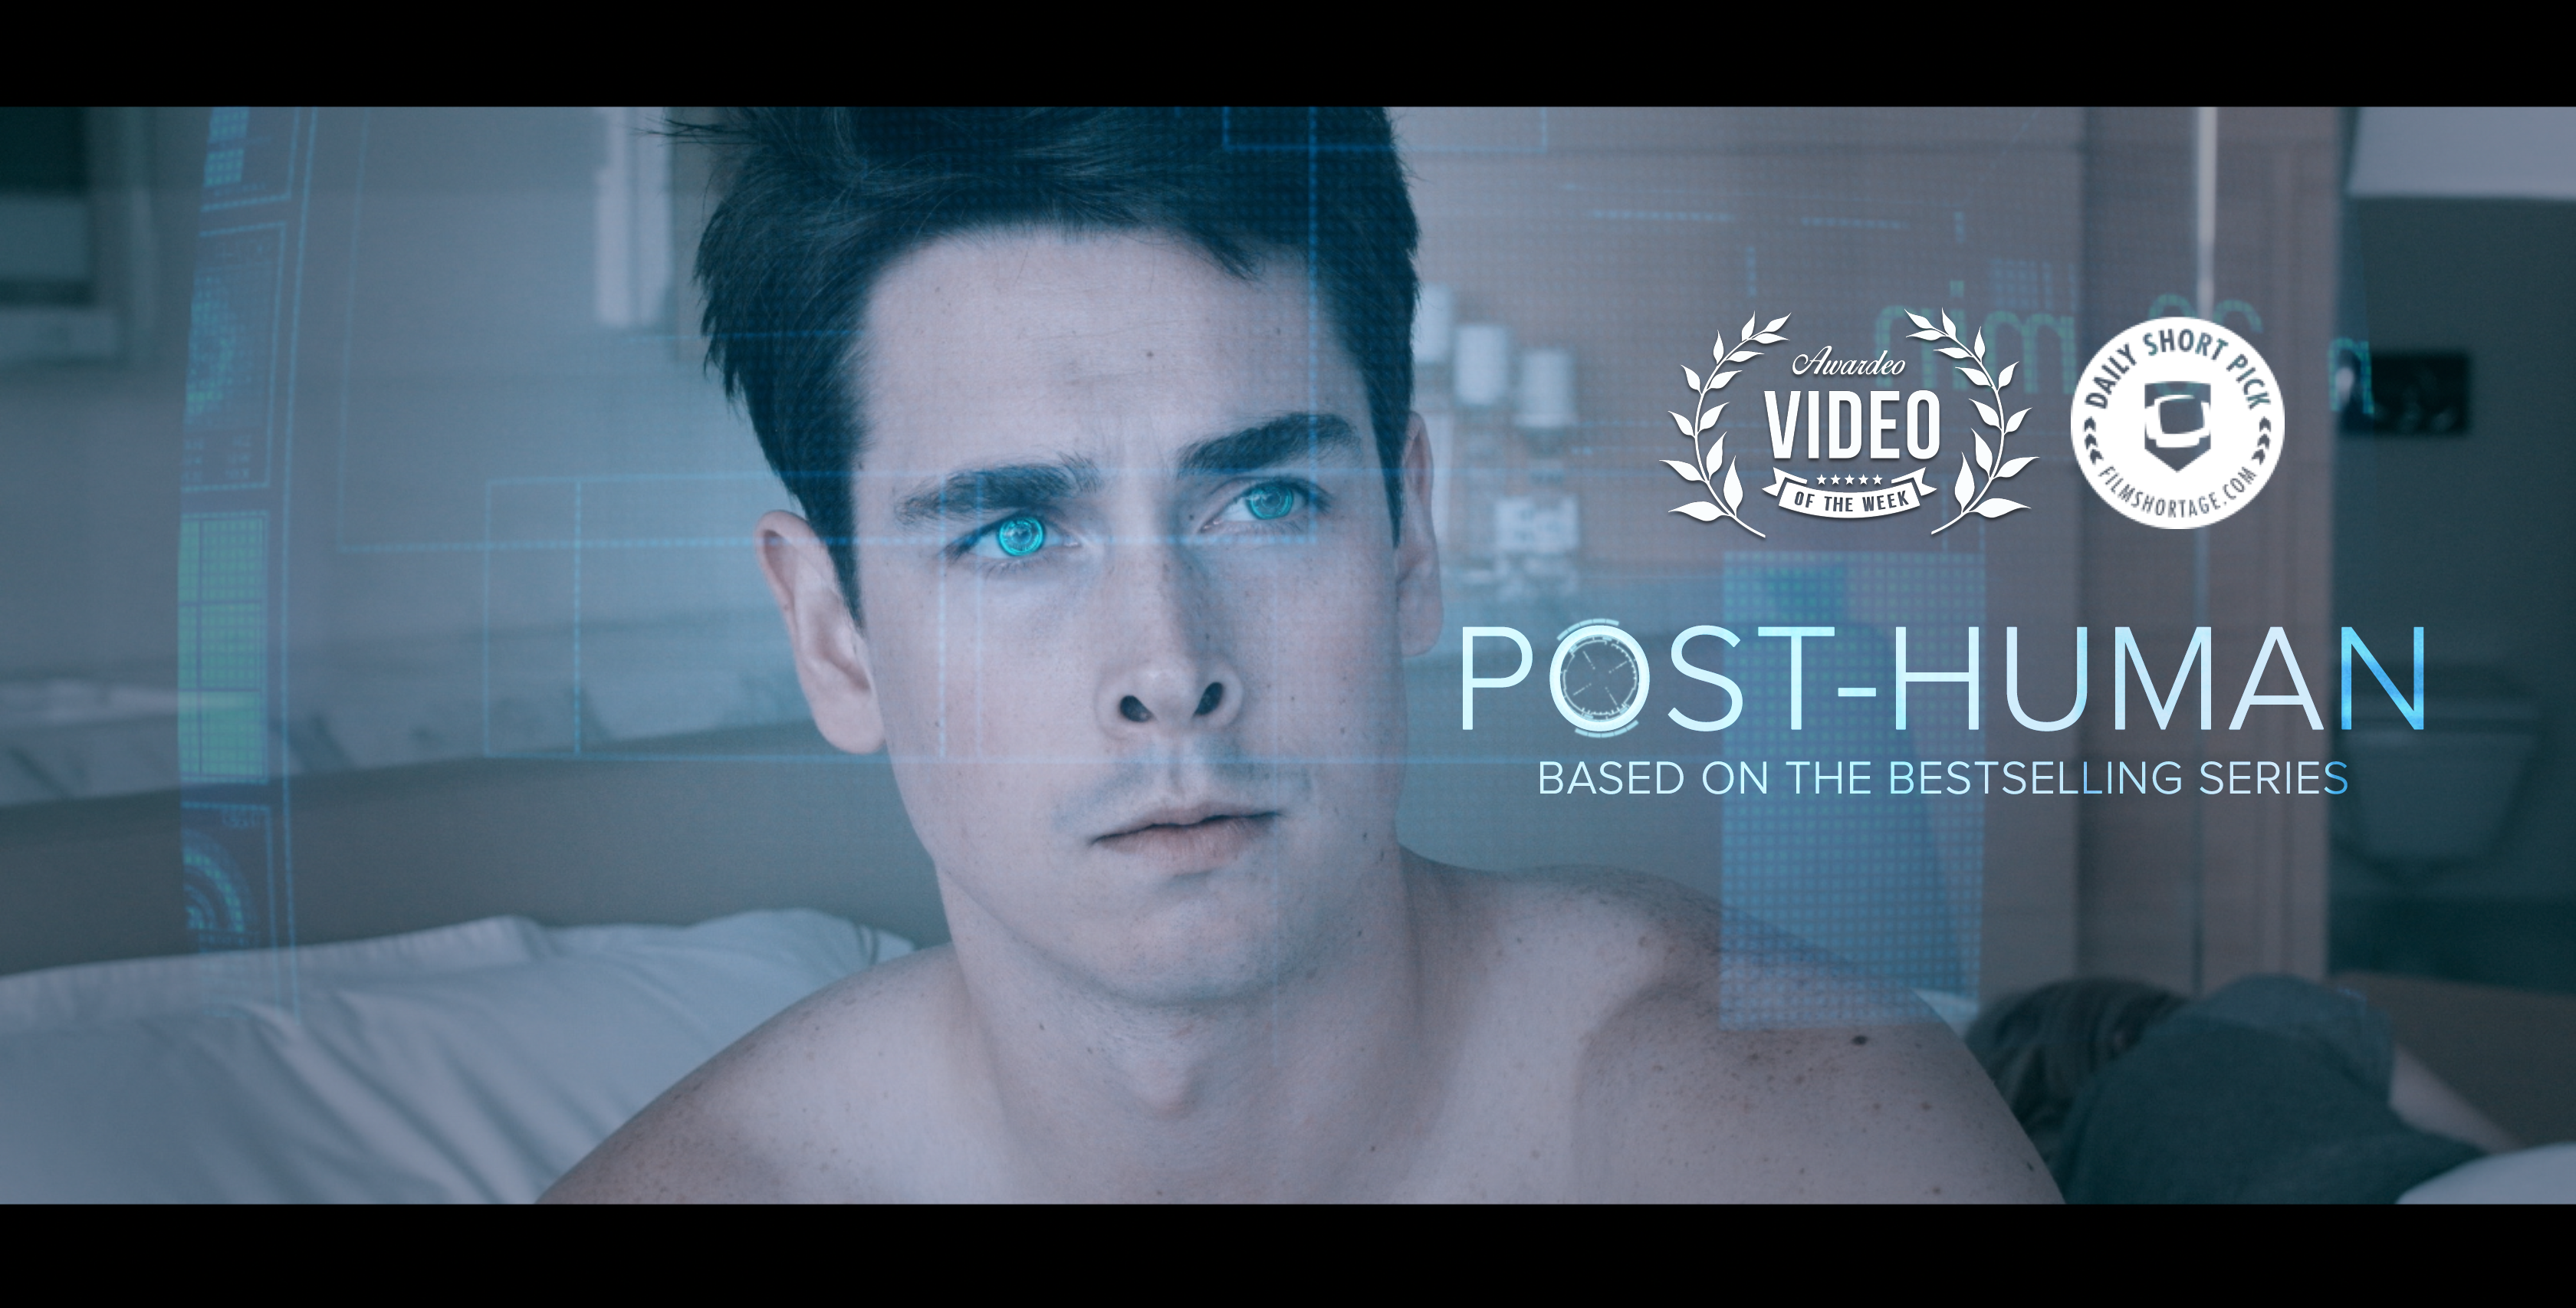 Post-Human Awardeo Video of the Week